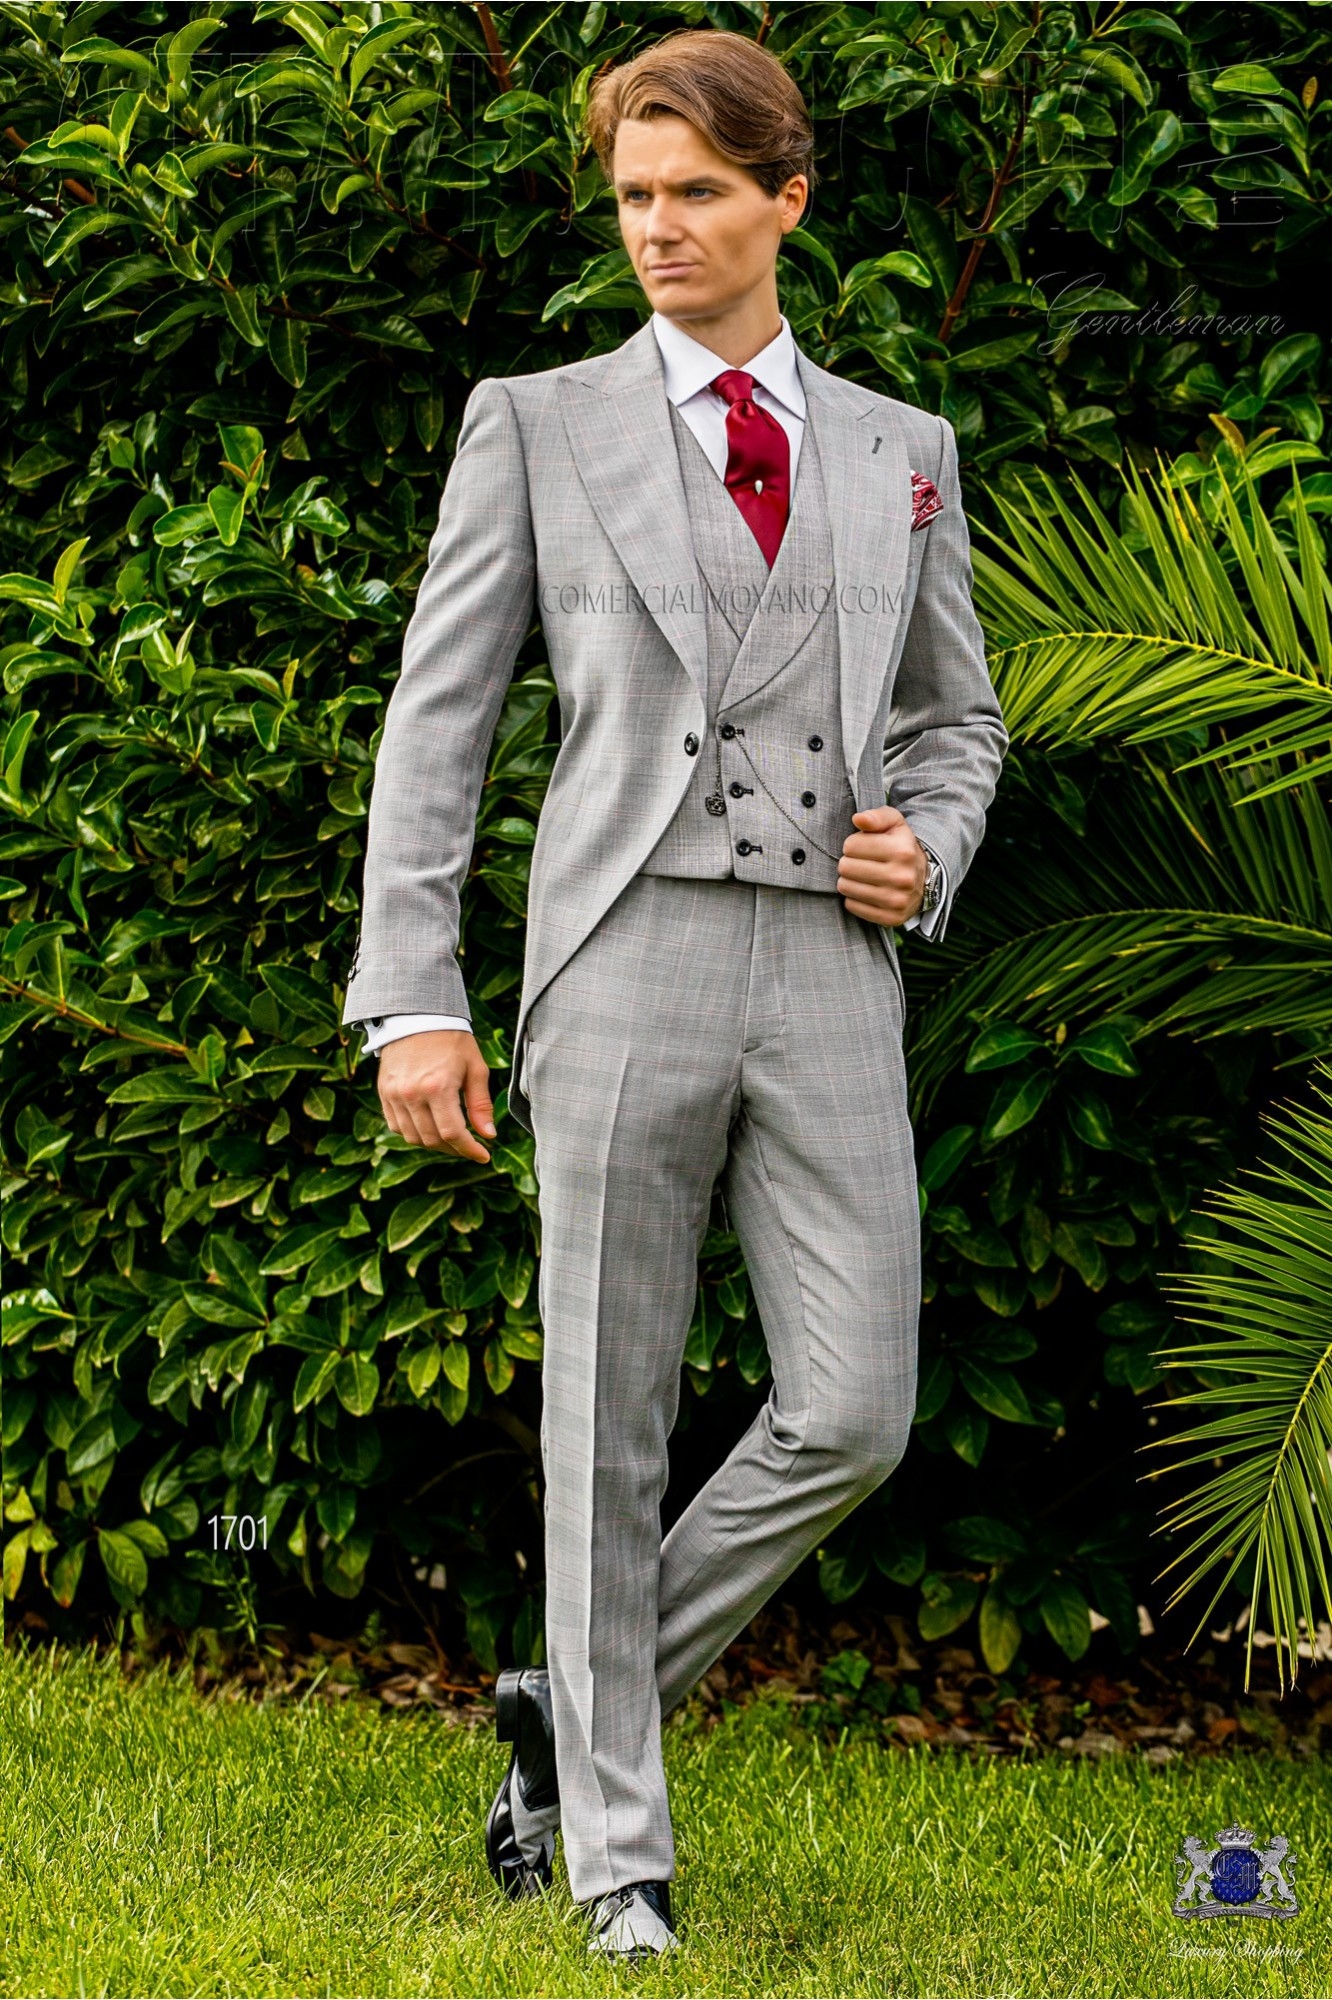 Prince of Wales morning suit light grey and red model 1701 Ottavio Nuccio Gala